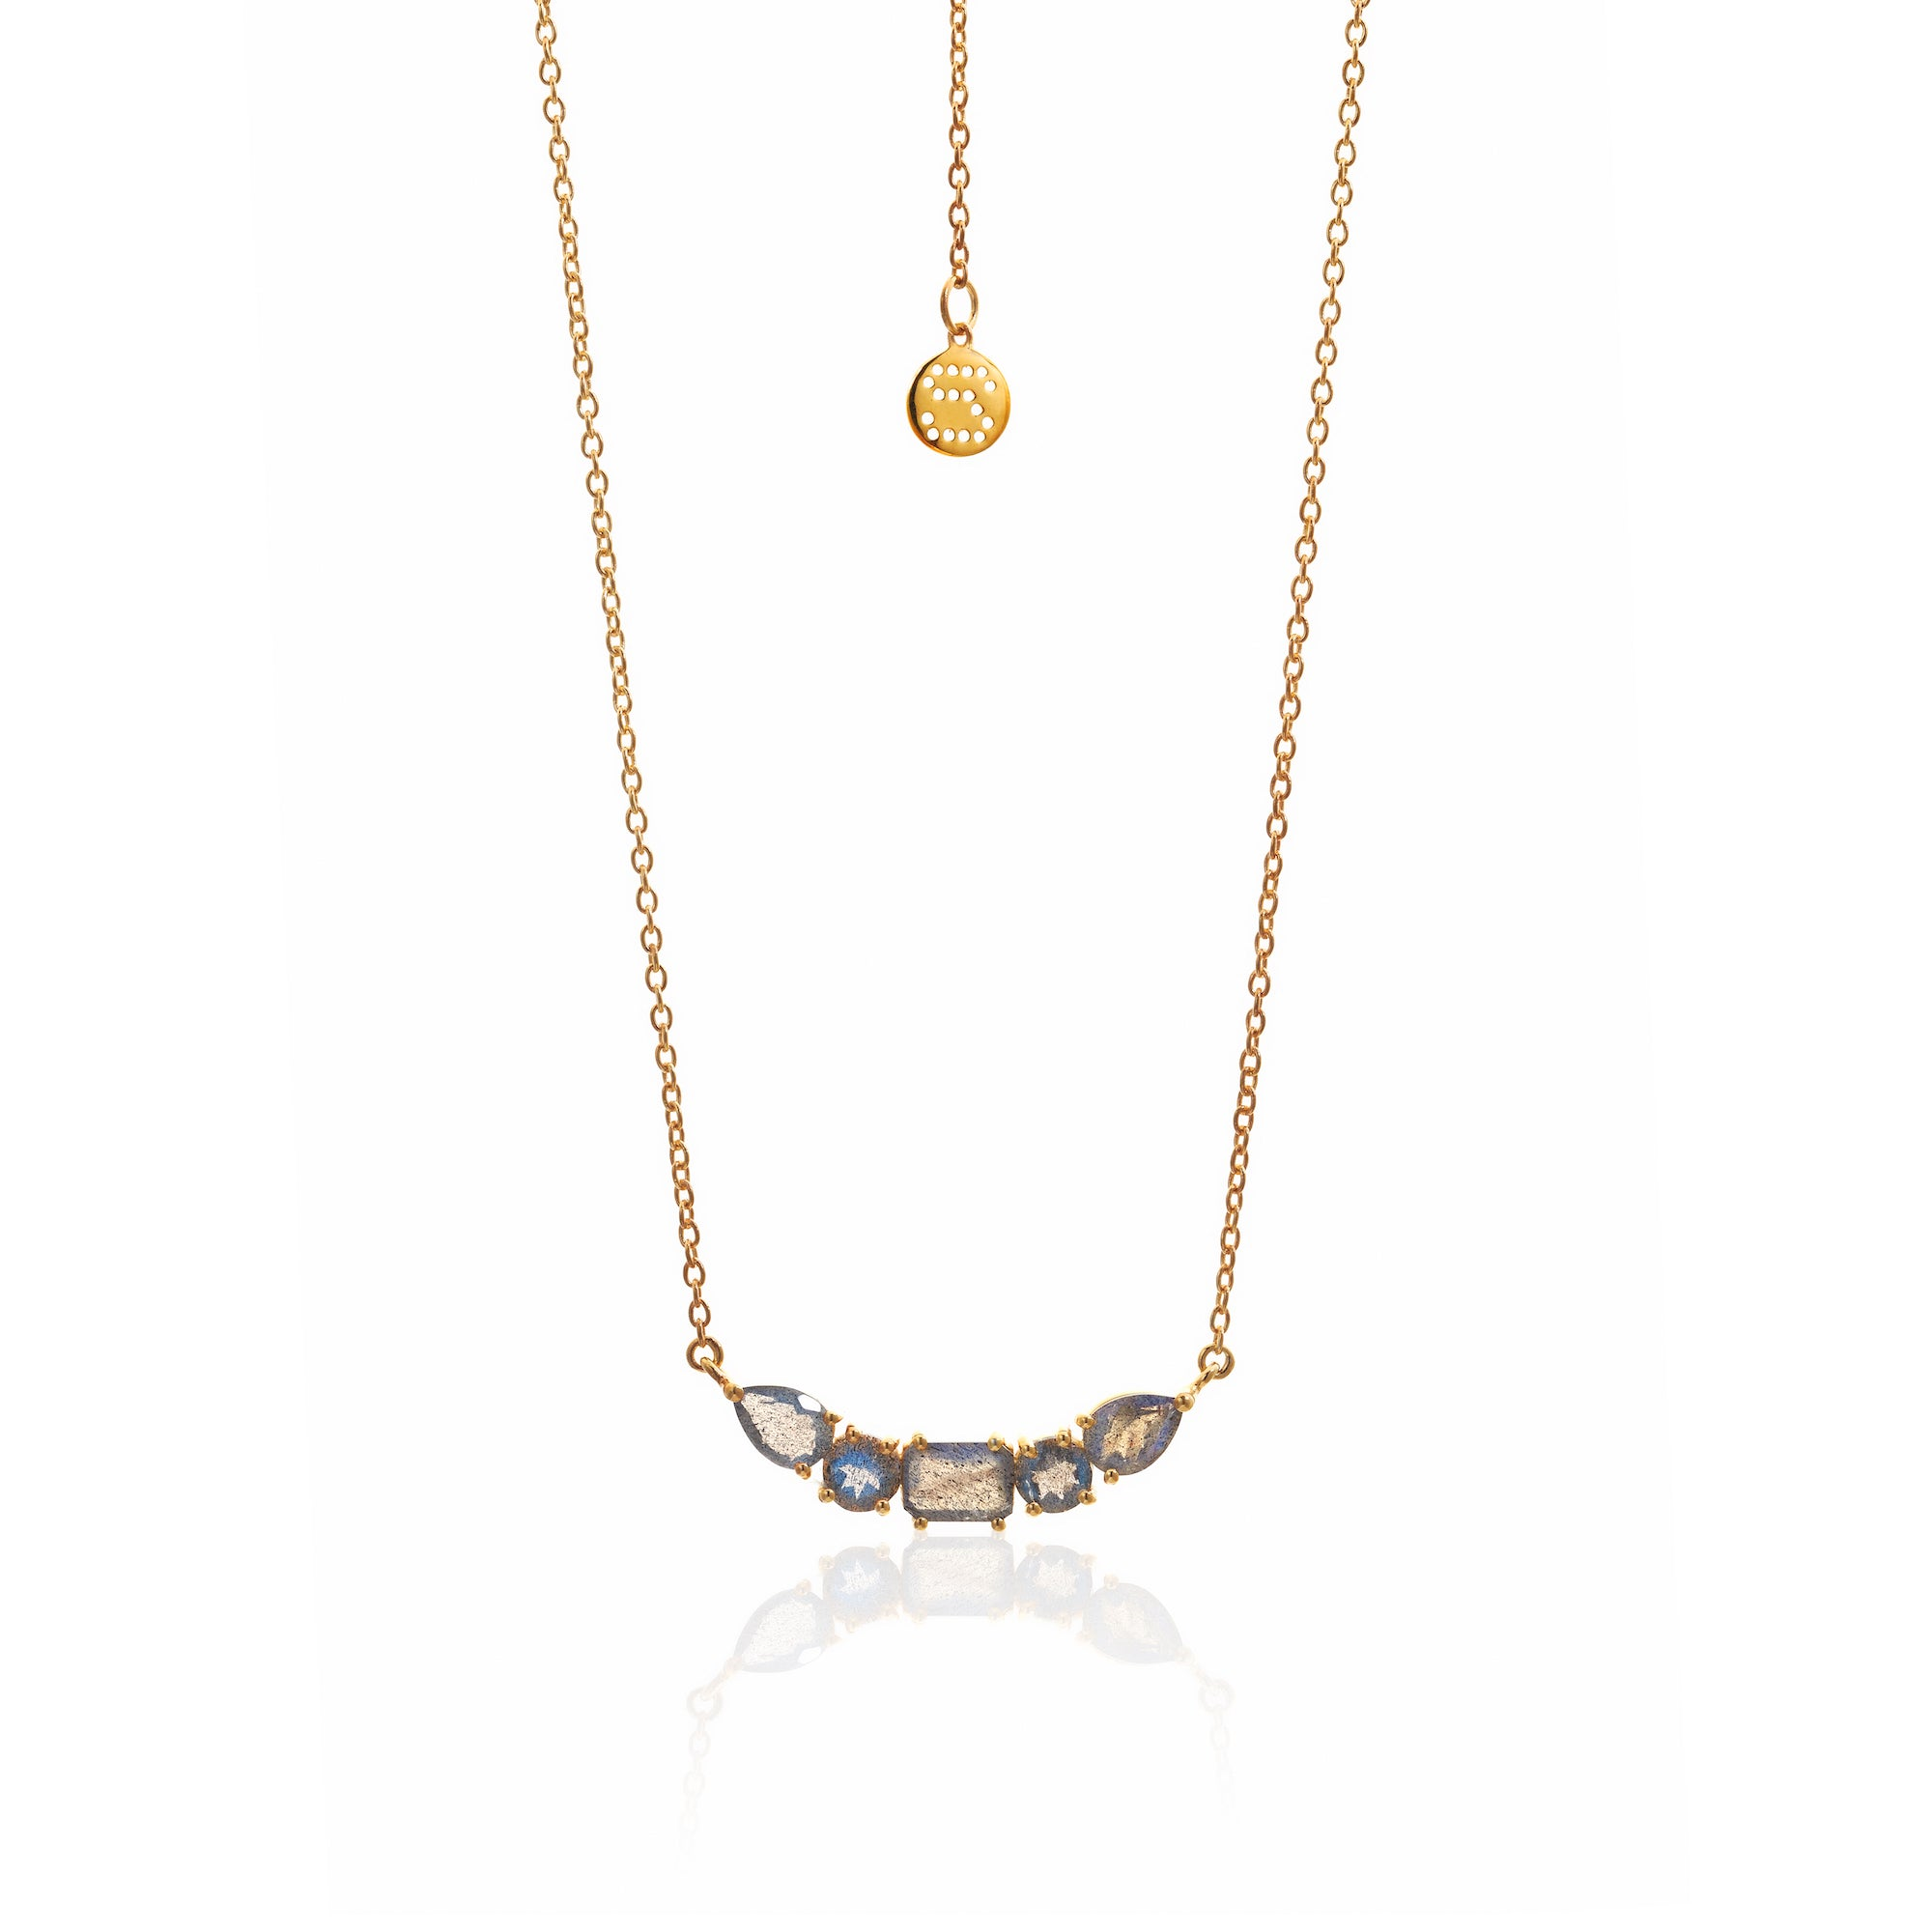 Silk&Steel Jewellery Amore Labradorite and Gold Necklace from La Dolce Vita Collection